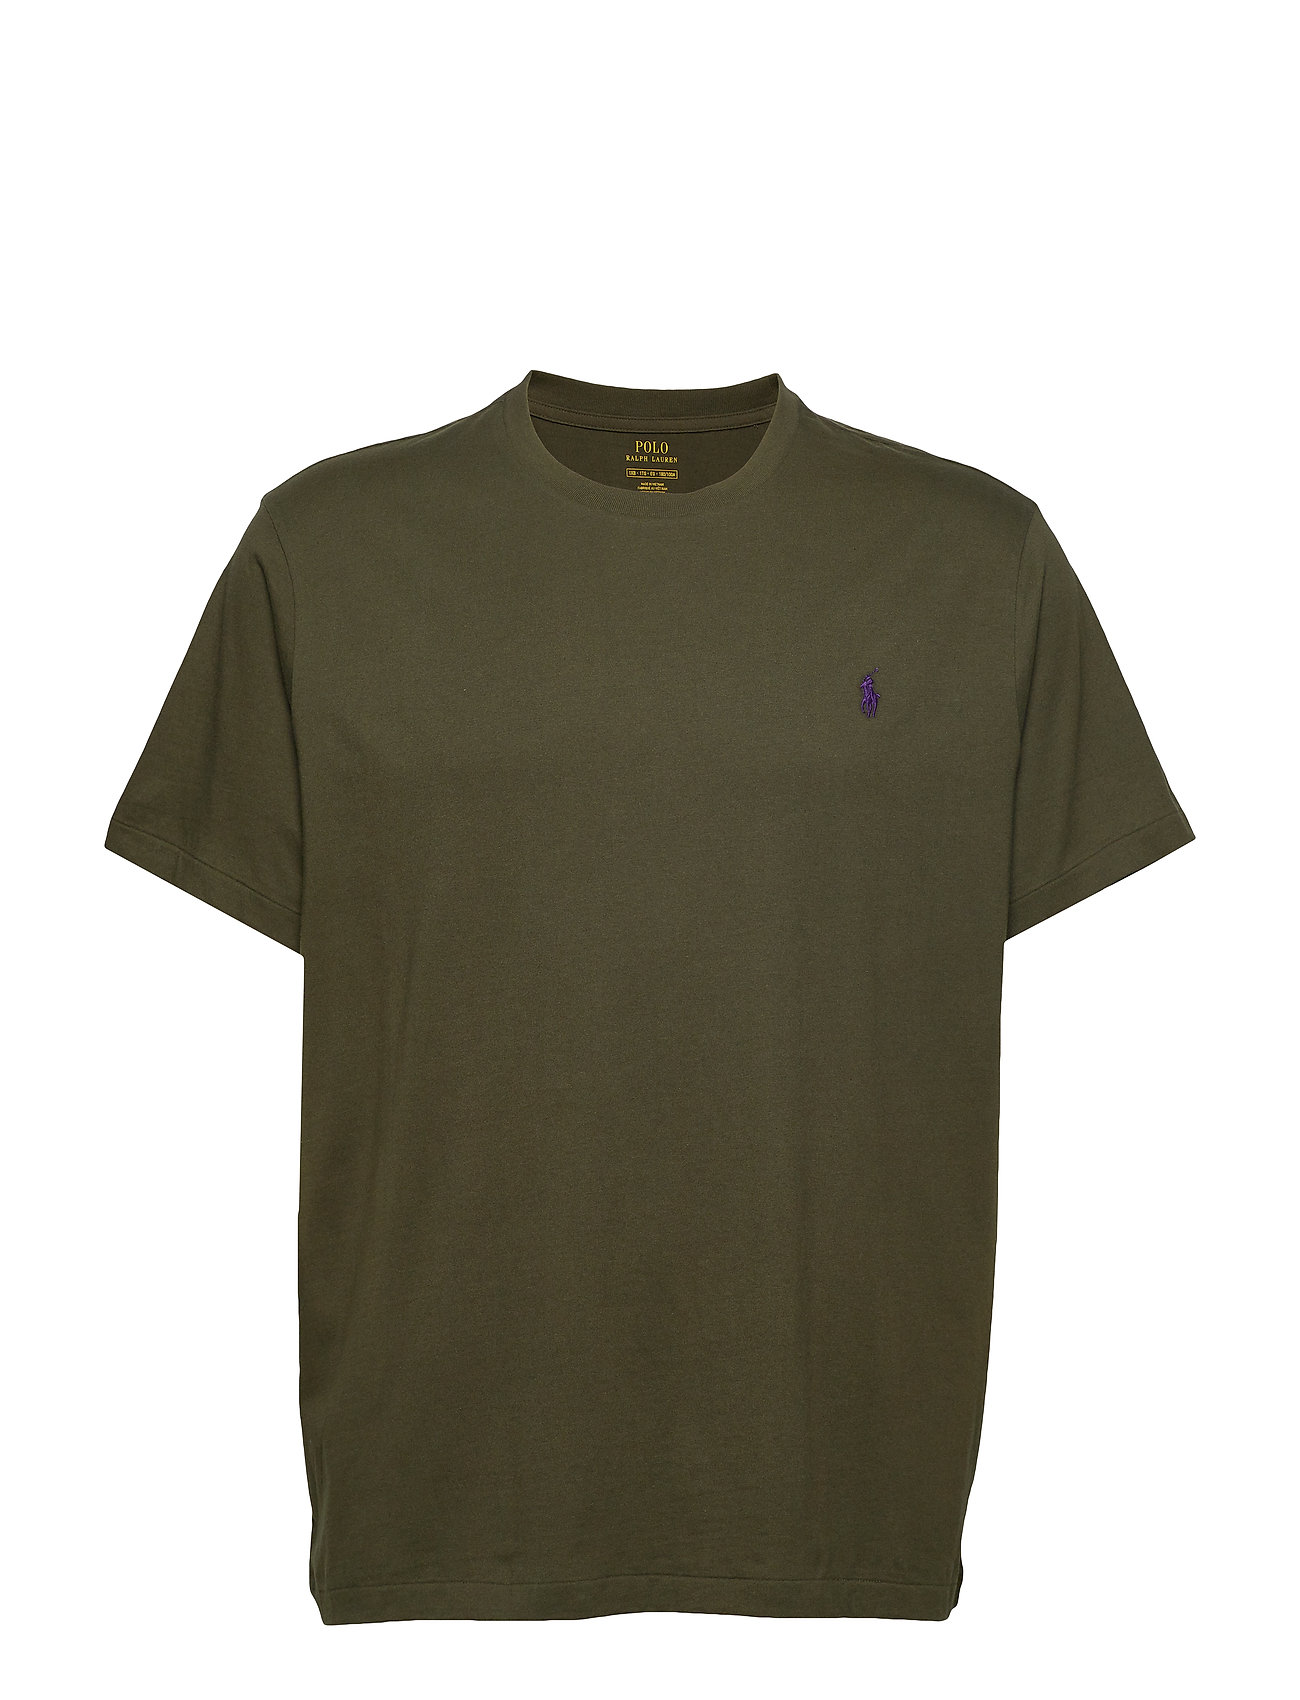 Polo Ralph Lauren Big & Tall Classic Fit Crewneck Tee - ESTATE OLIVE/C498